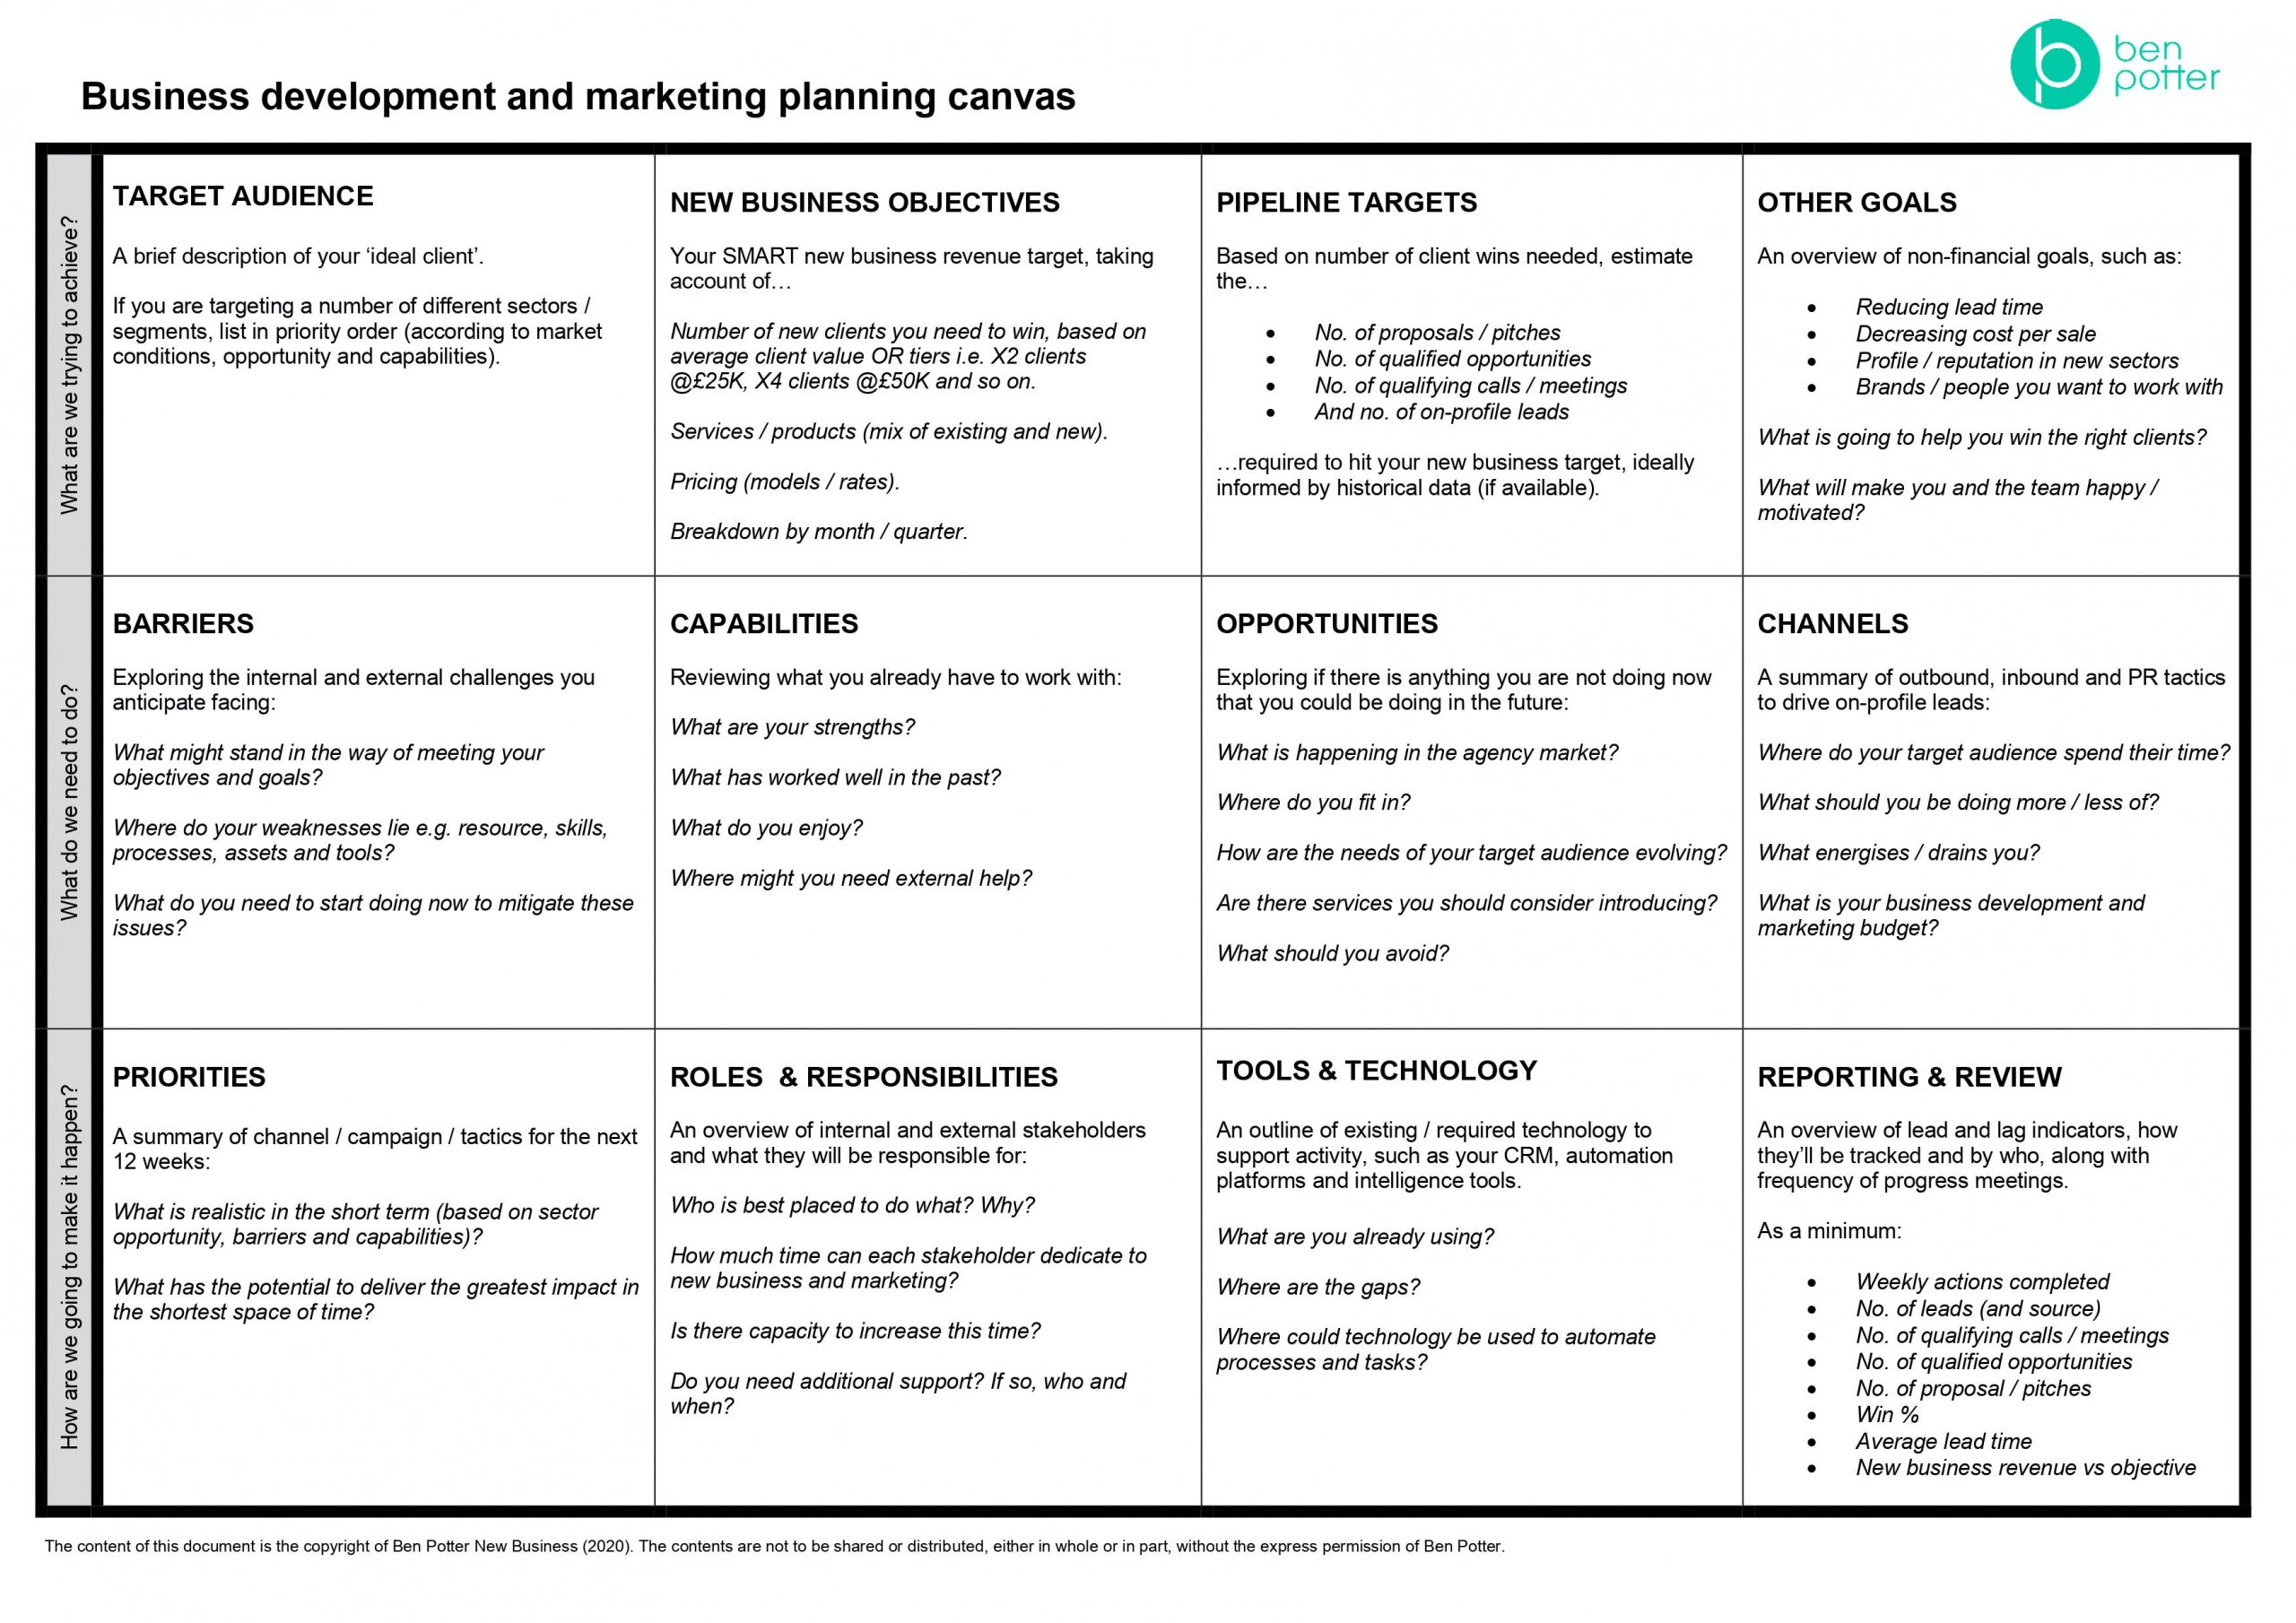 biz dev and marketing canvas including target audience, new biz objectives, pipeline targets, other goals, barriers, capabilities, opportunities, channels, priorities, roles and responsibilities, tools and technologies, reporting and review